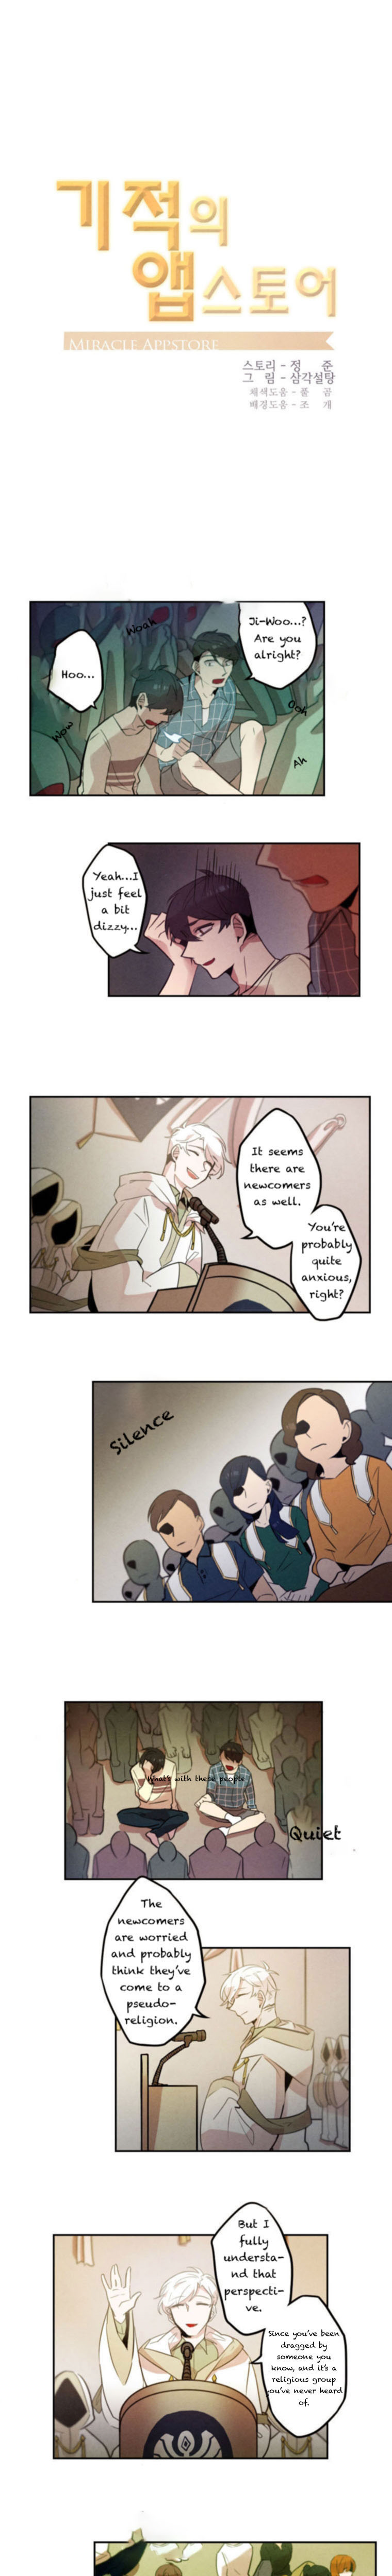 Miracle App Store - chapter 20 - #3